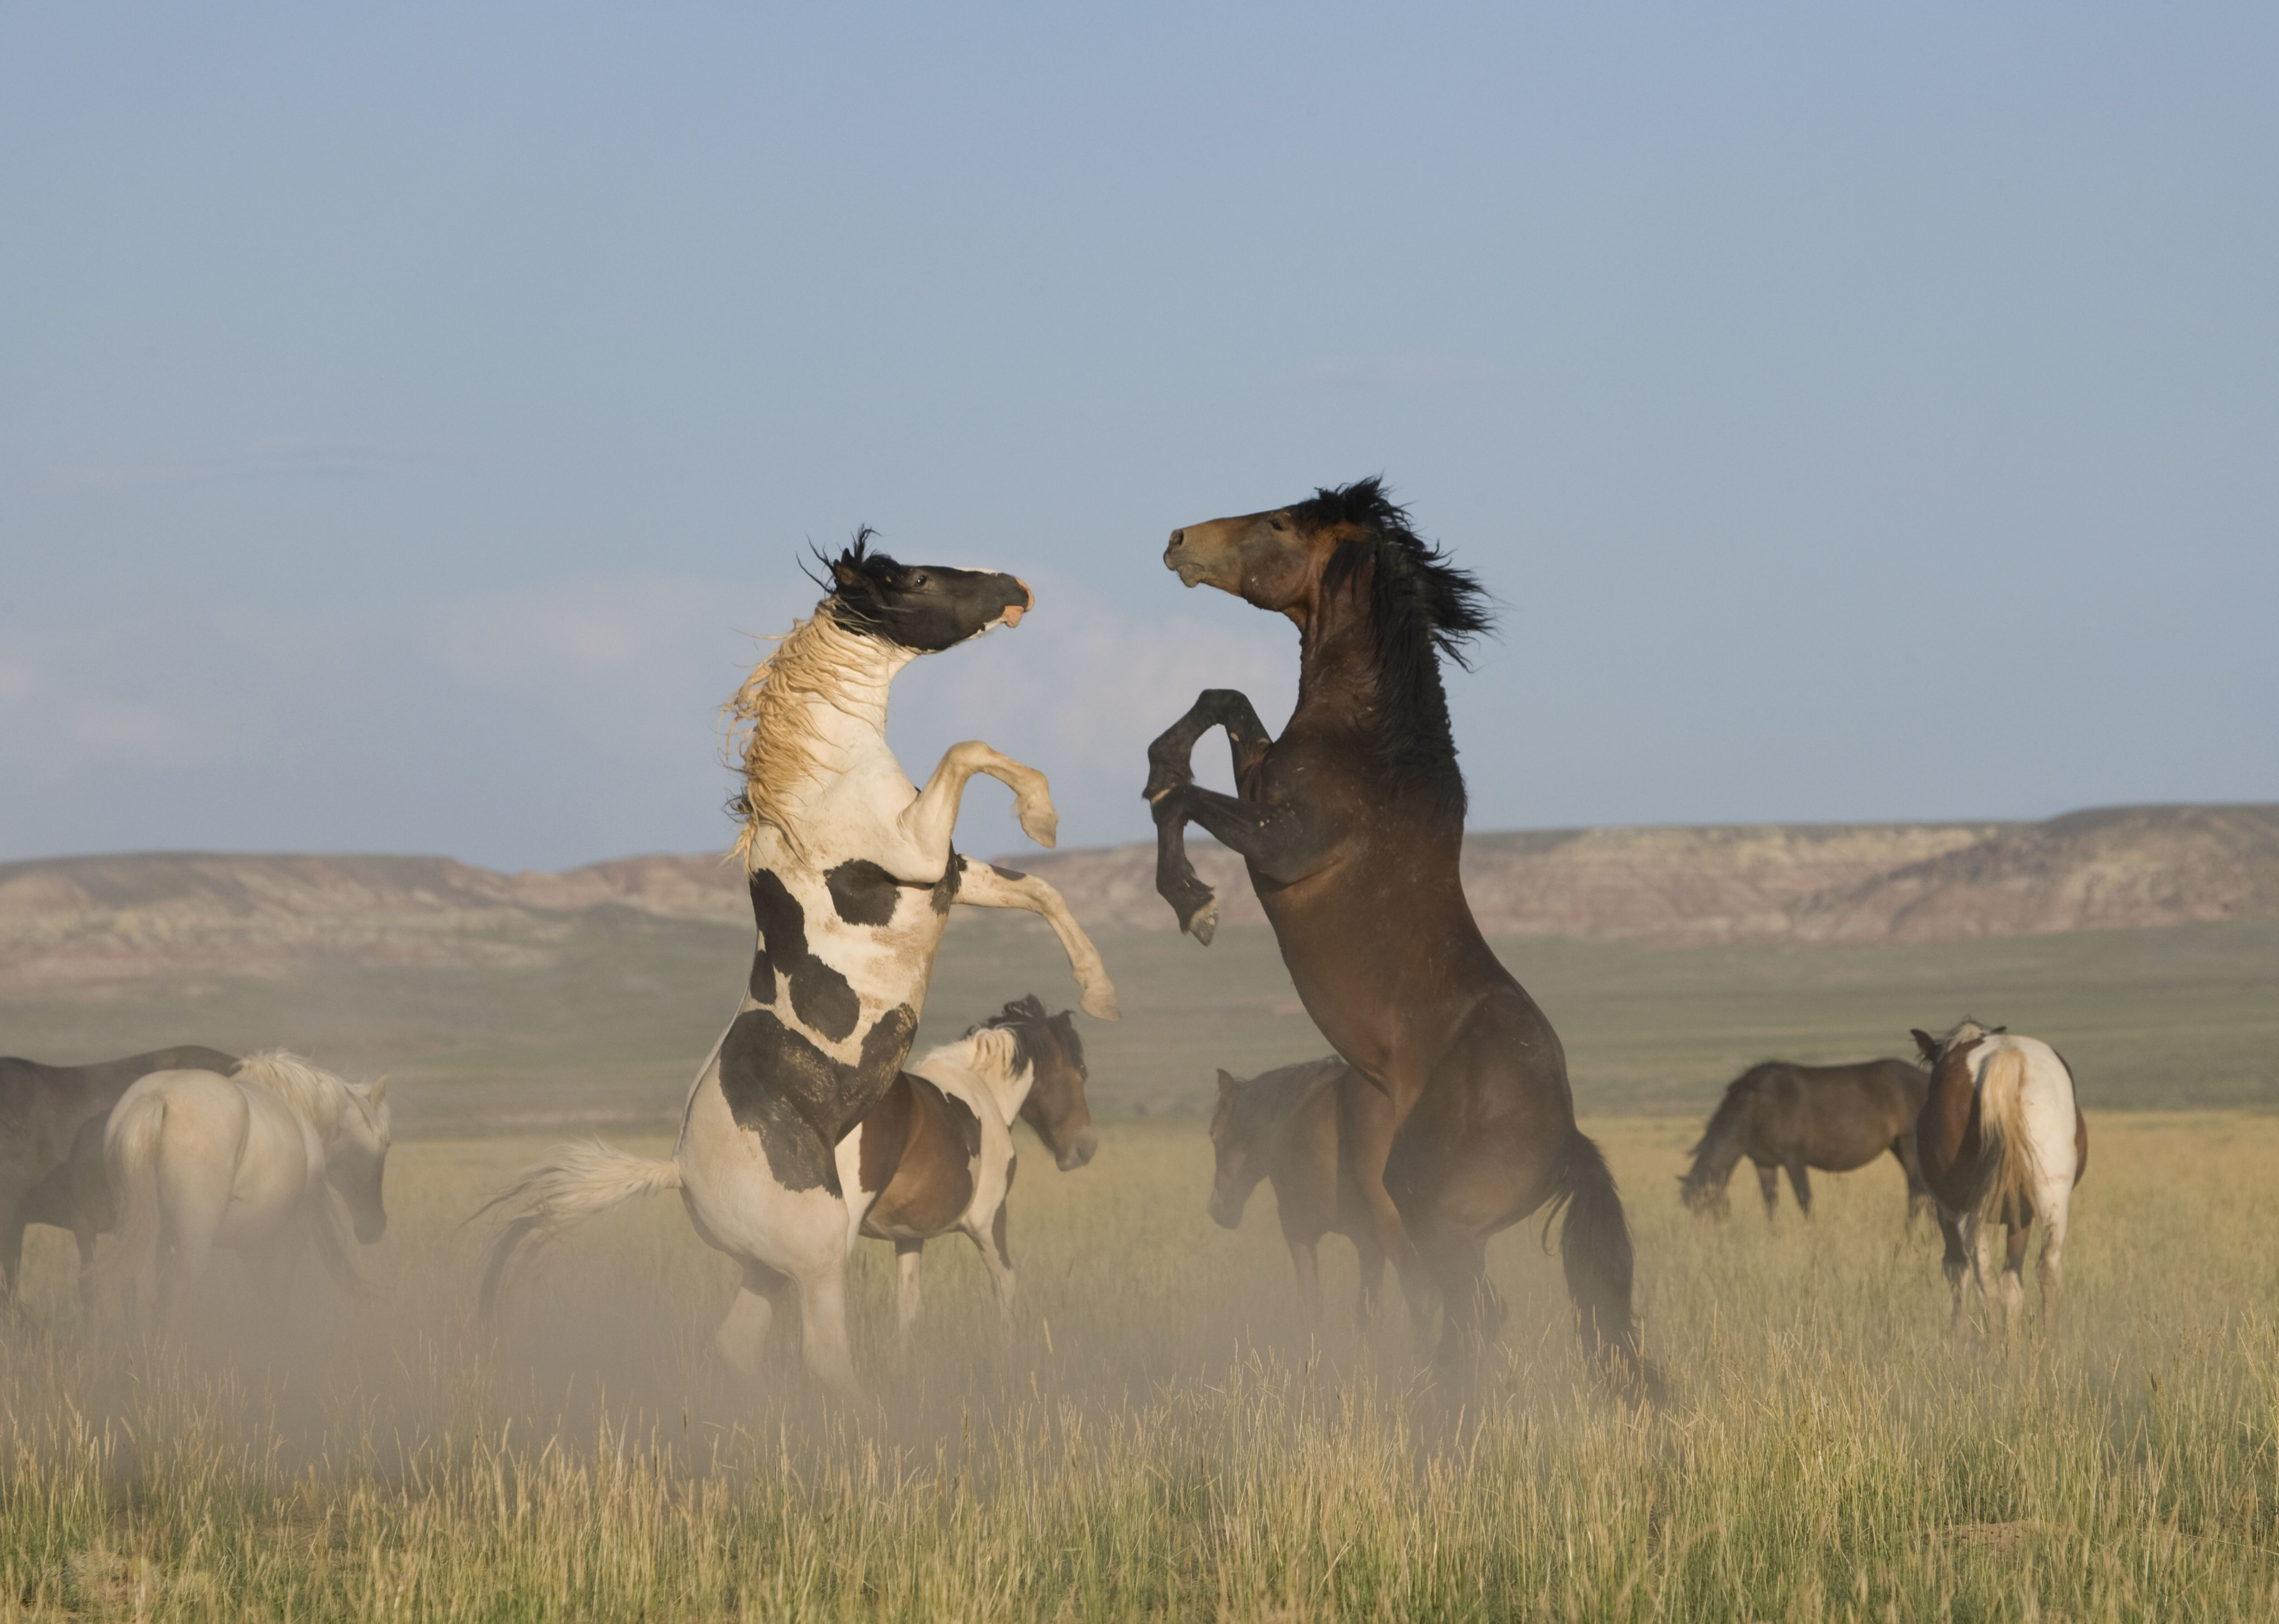 Wild horse / mustang (Equus caballus) two fighting in the McCullough Peaks, Wyoming, USA.